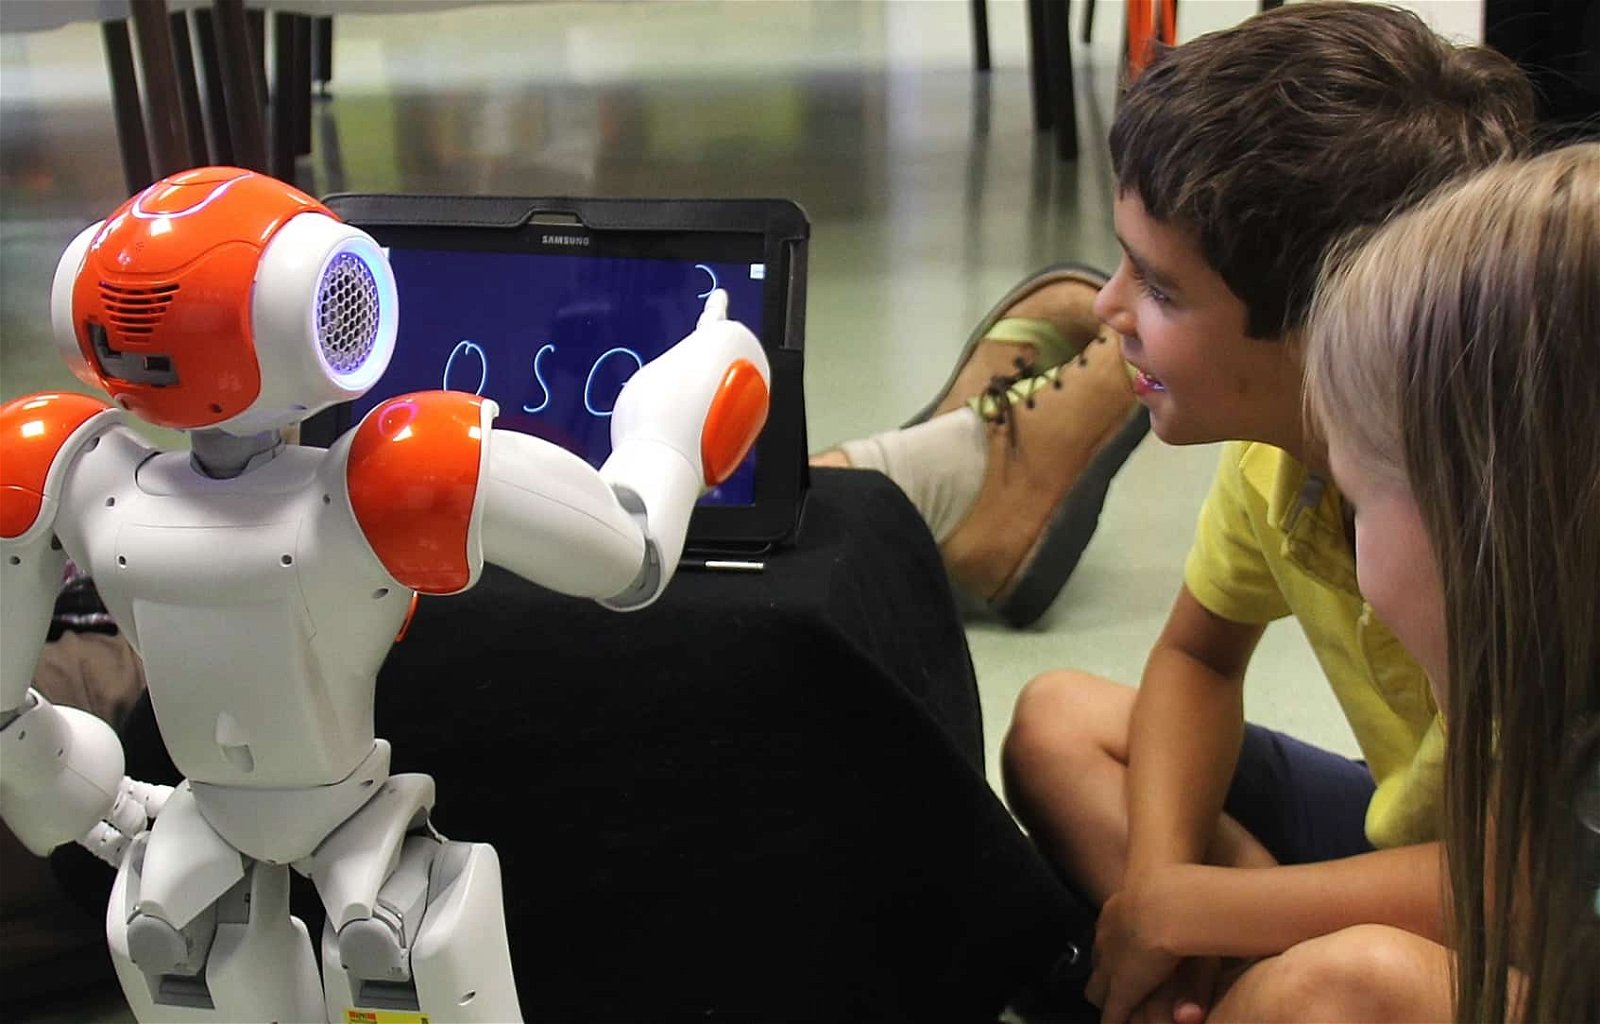 Will Artificial Intelligence Replace Teachers in the Future?